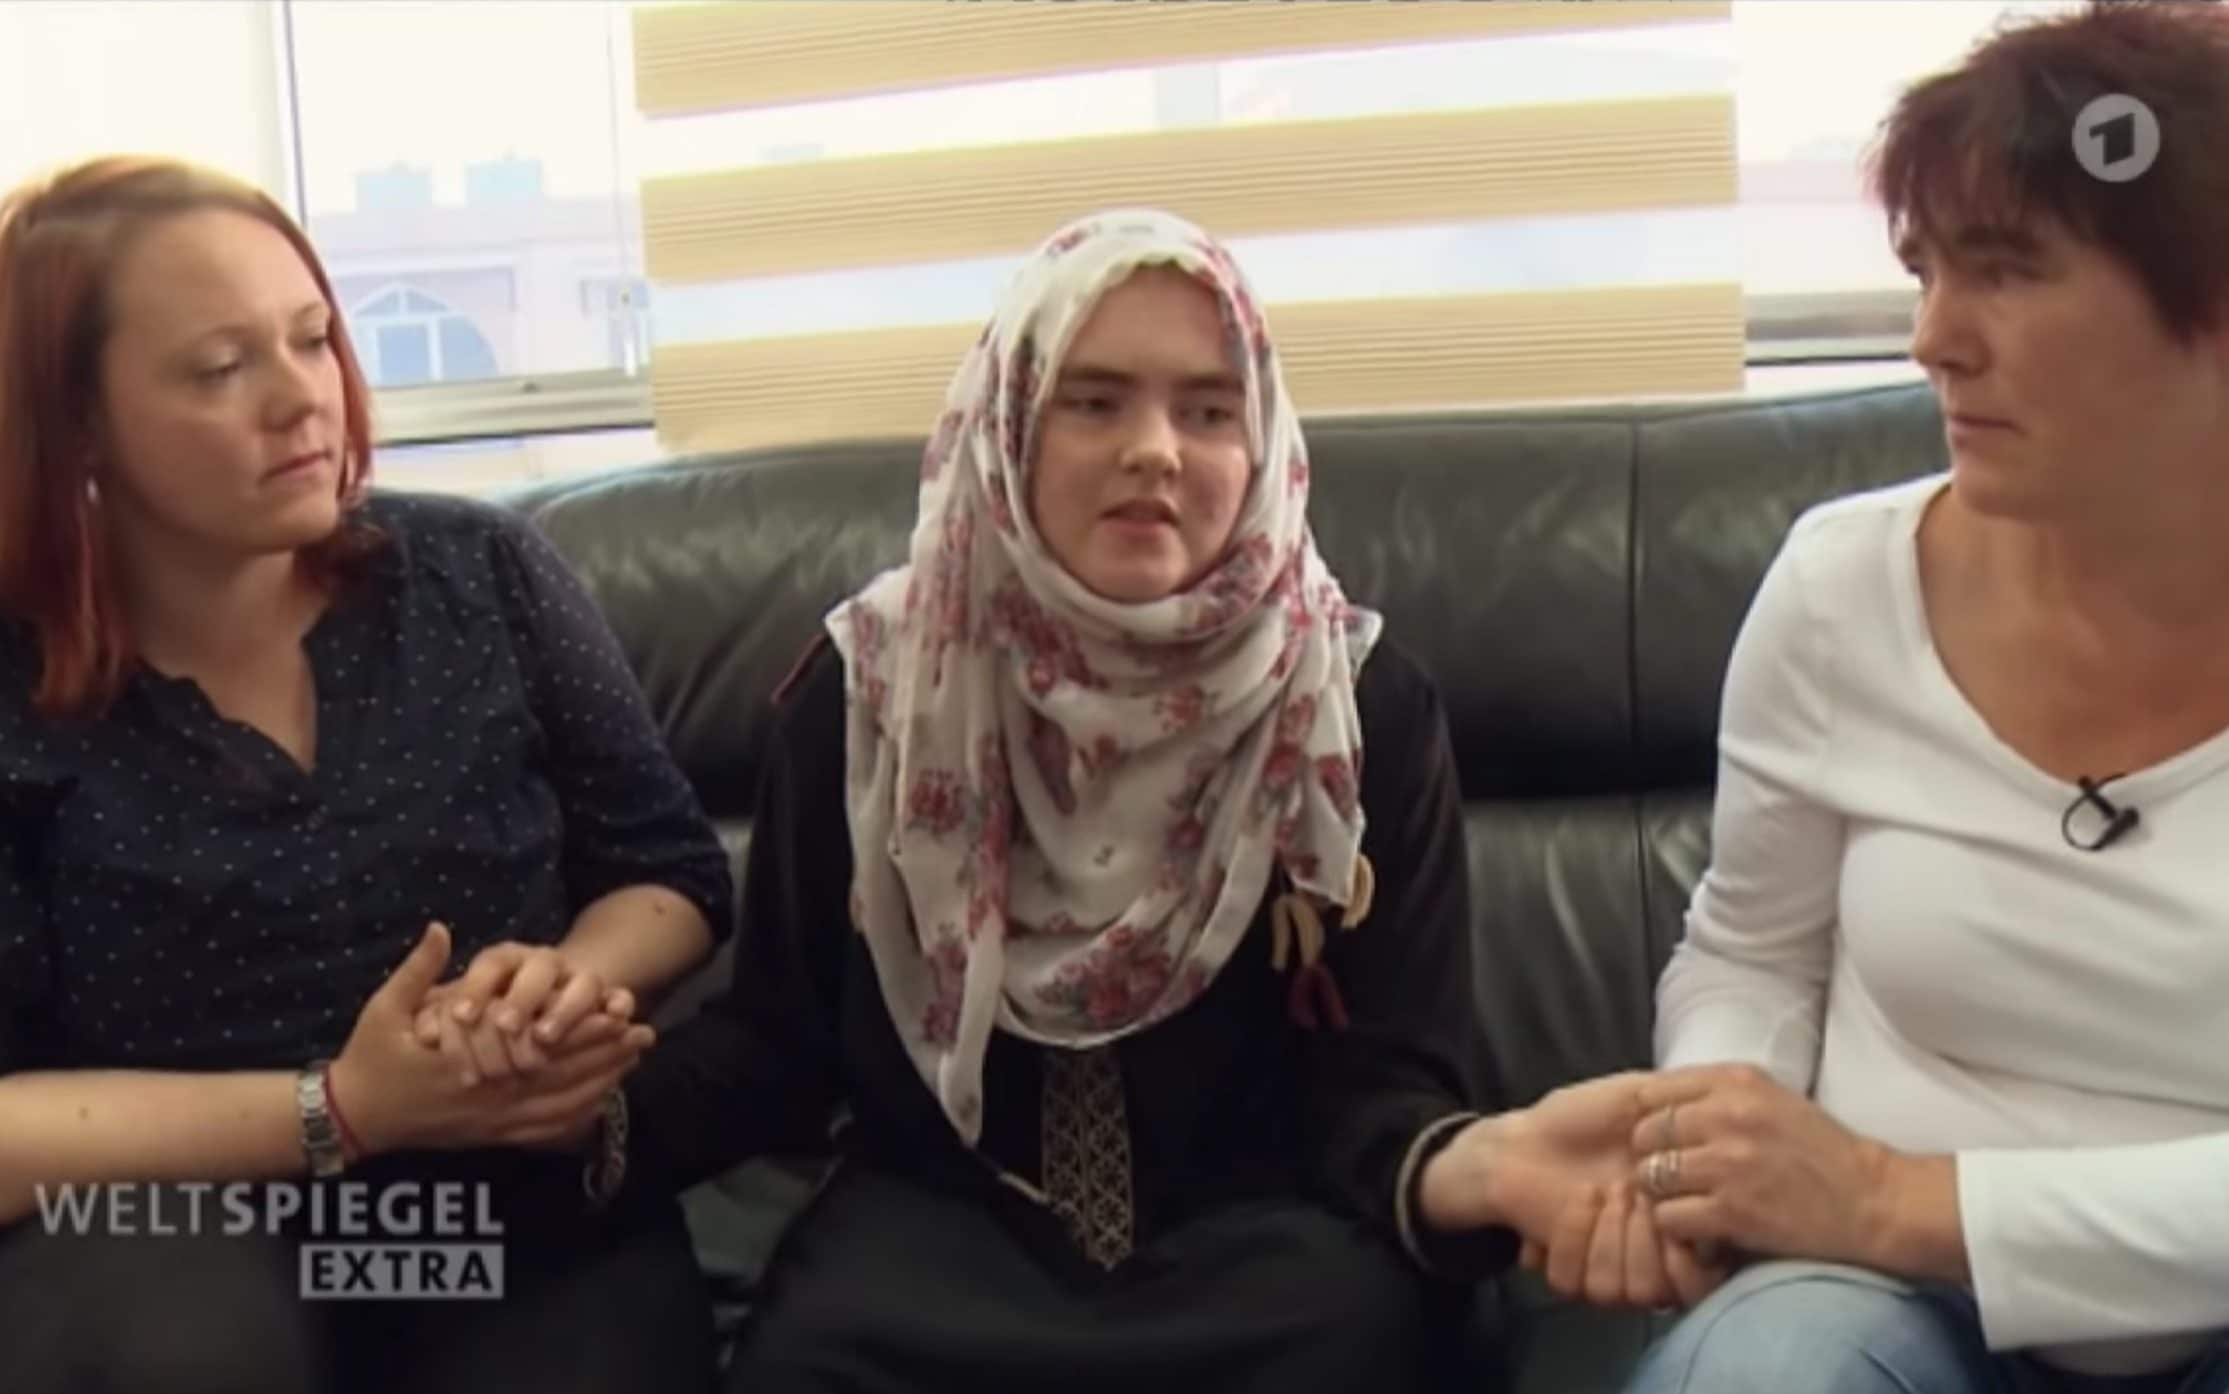 German teenager says she was 'idiot' for joining Isil, in first interview since capture